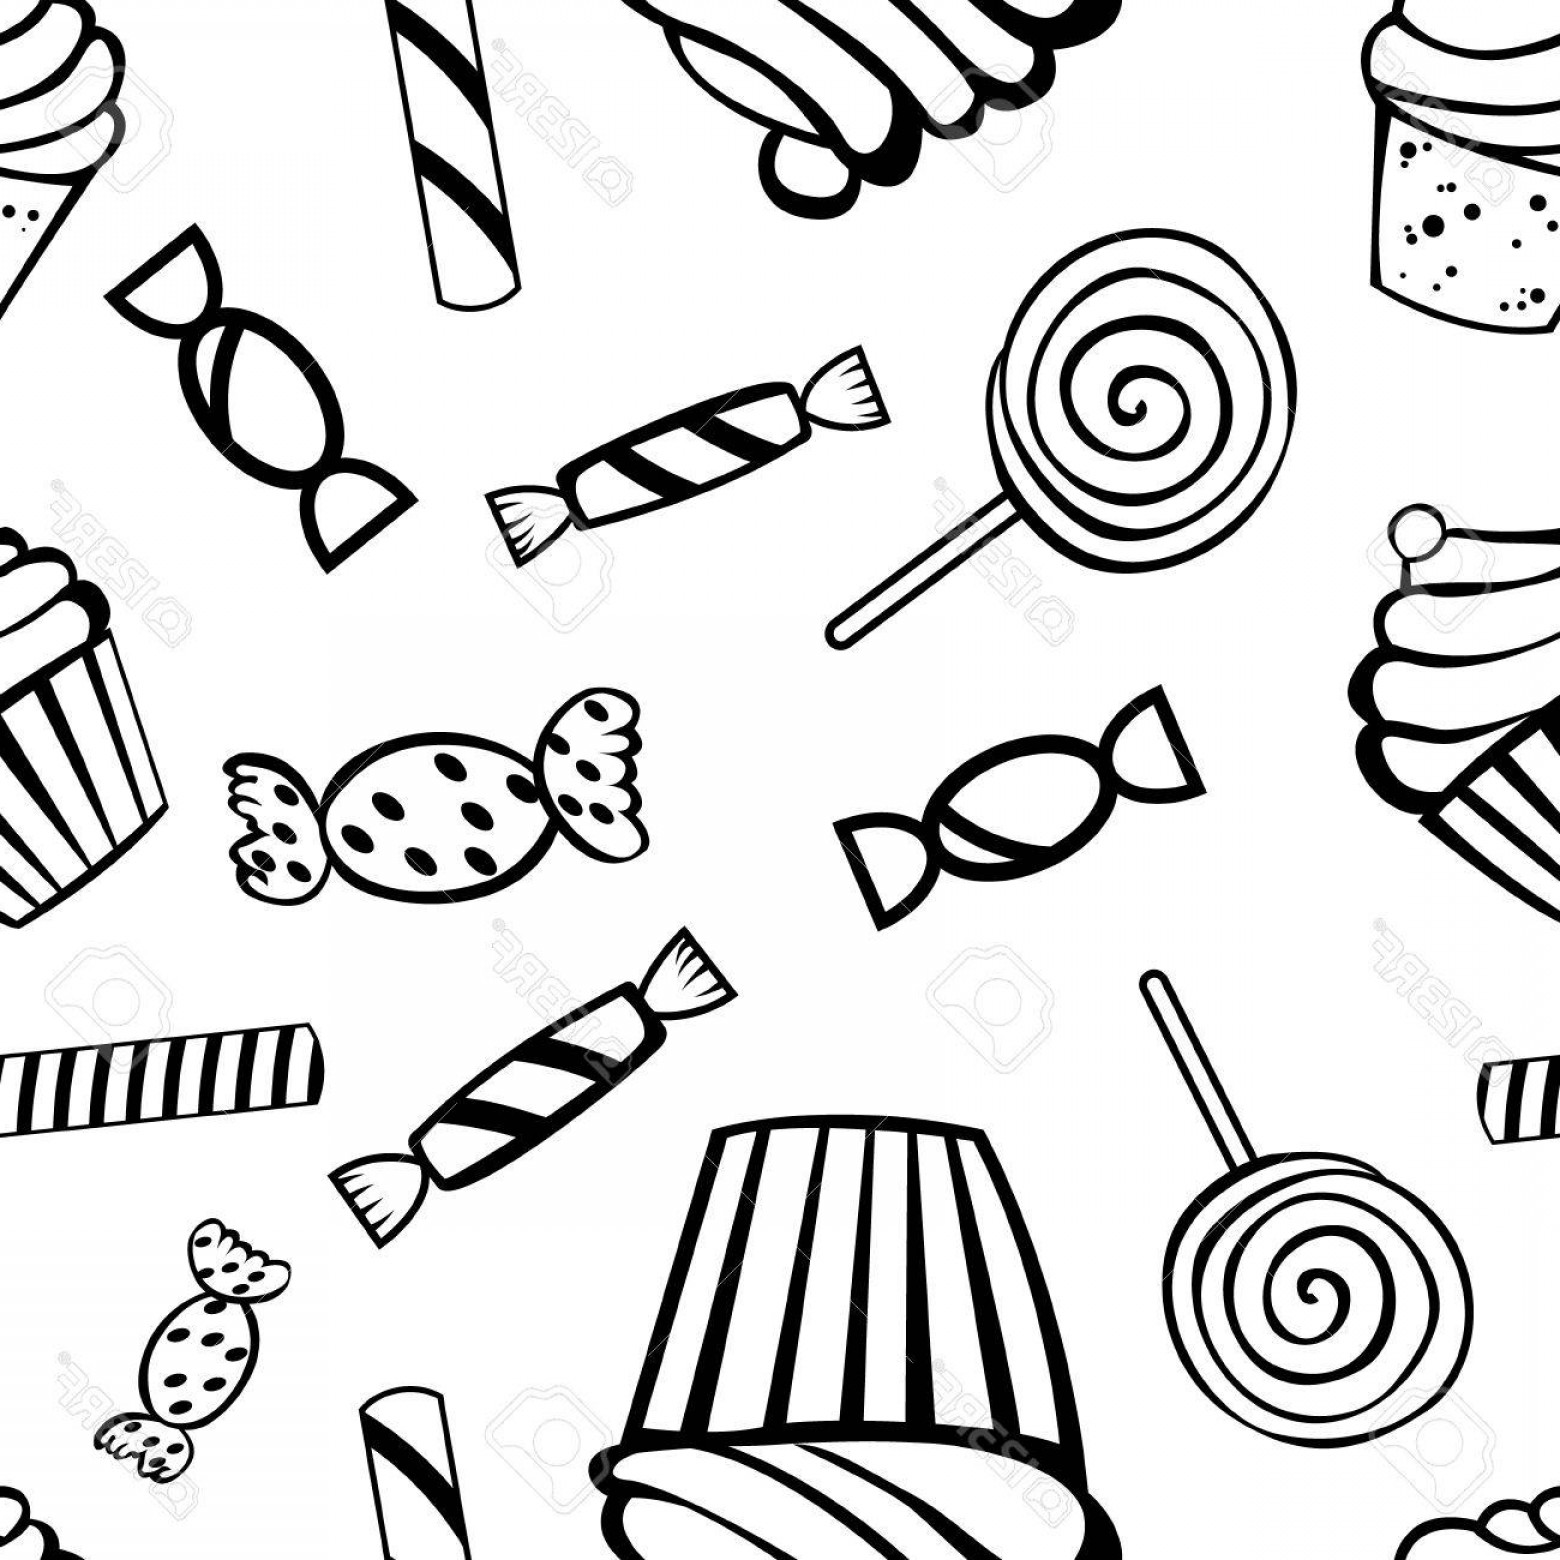 Black And White Candy Vector: Photostock Vector Halloween Fun And Spooky Black And White Pattern With Candies